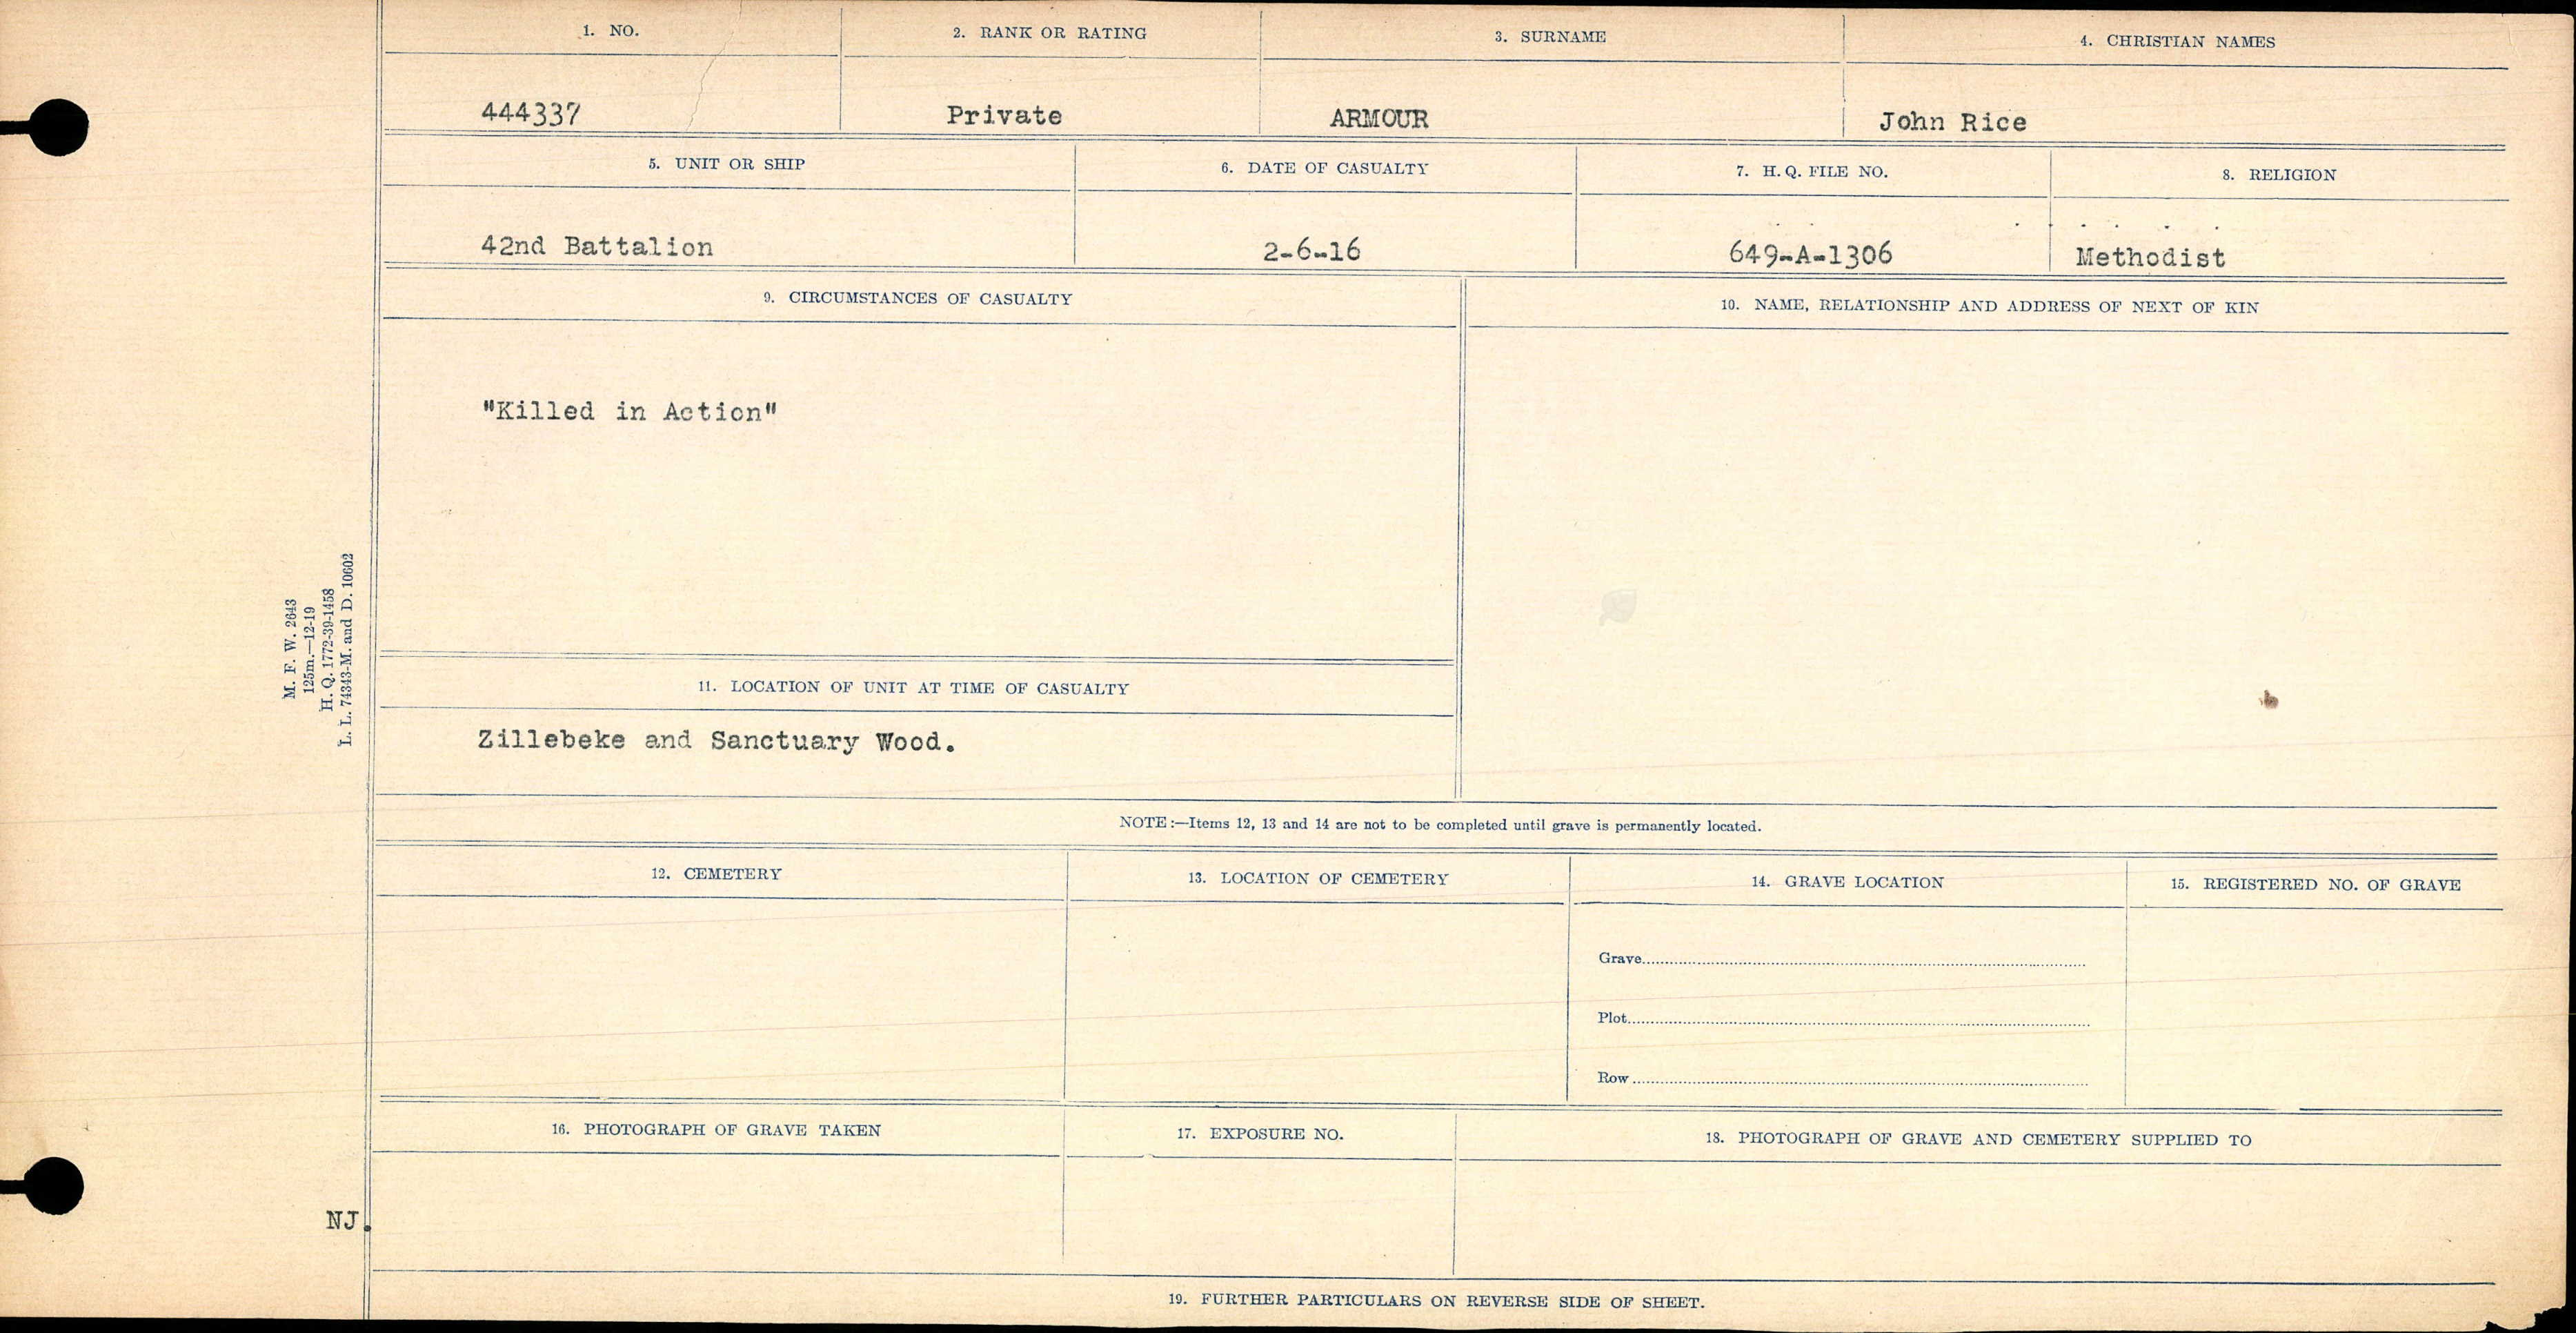 """Circumstances of Death Registers– Front of """"Circumstance of Death"""" file describing the fate of Private Amour."""